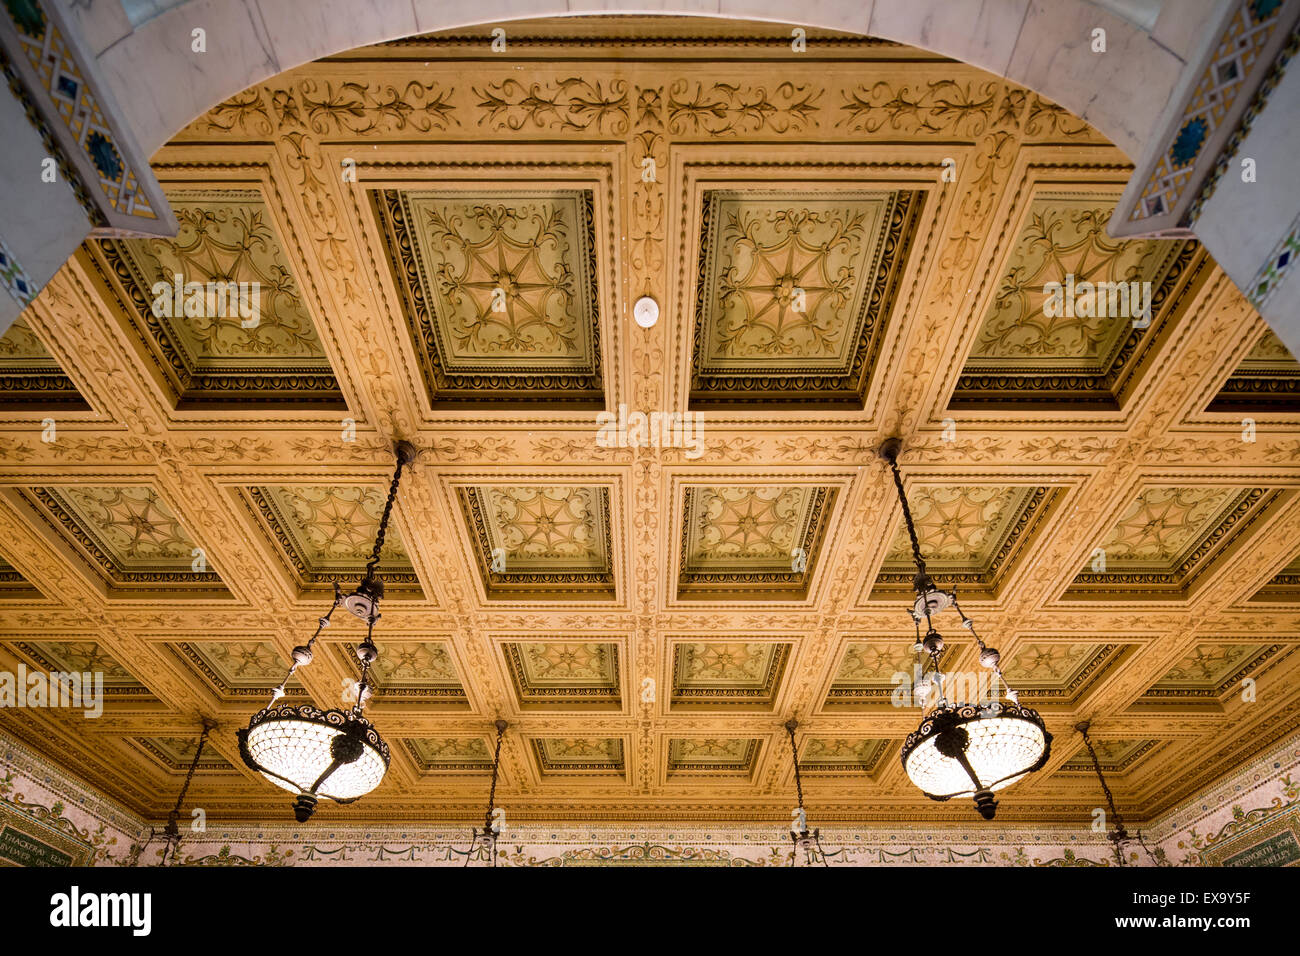 coffered ceiling, Chicago Cultural Center, formerly the Chicago Public Library, Chicago, Illinois, USA - Stock Image